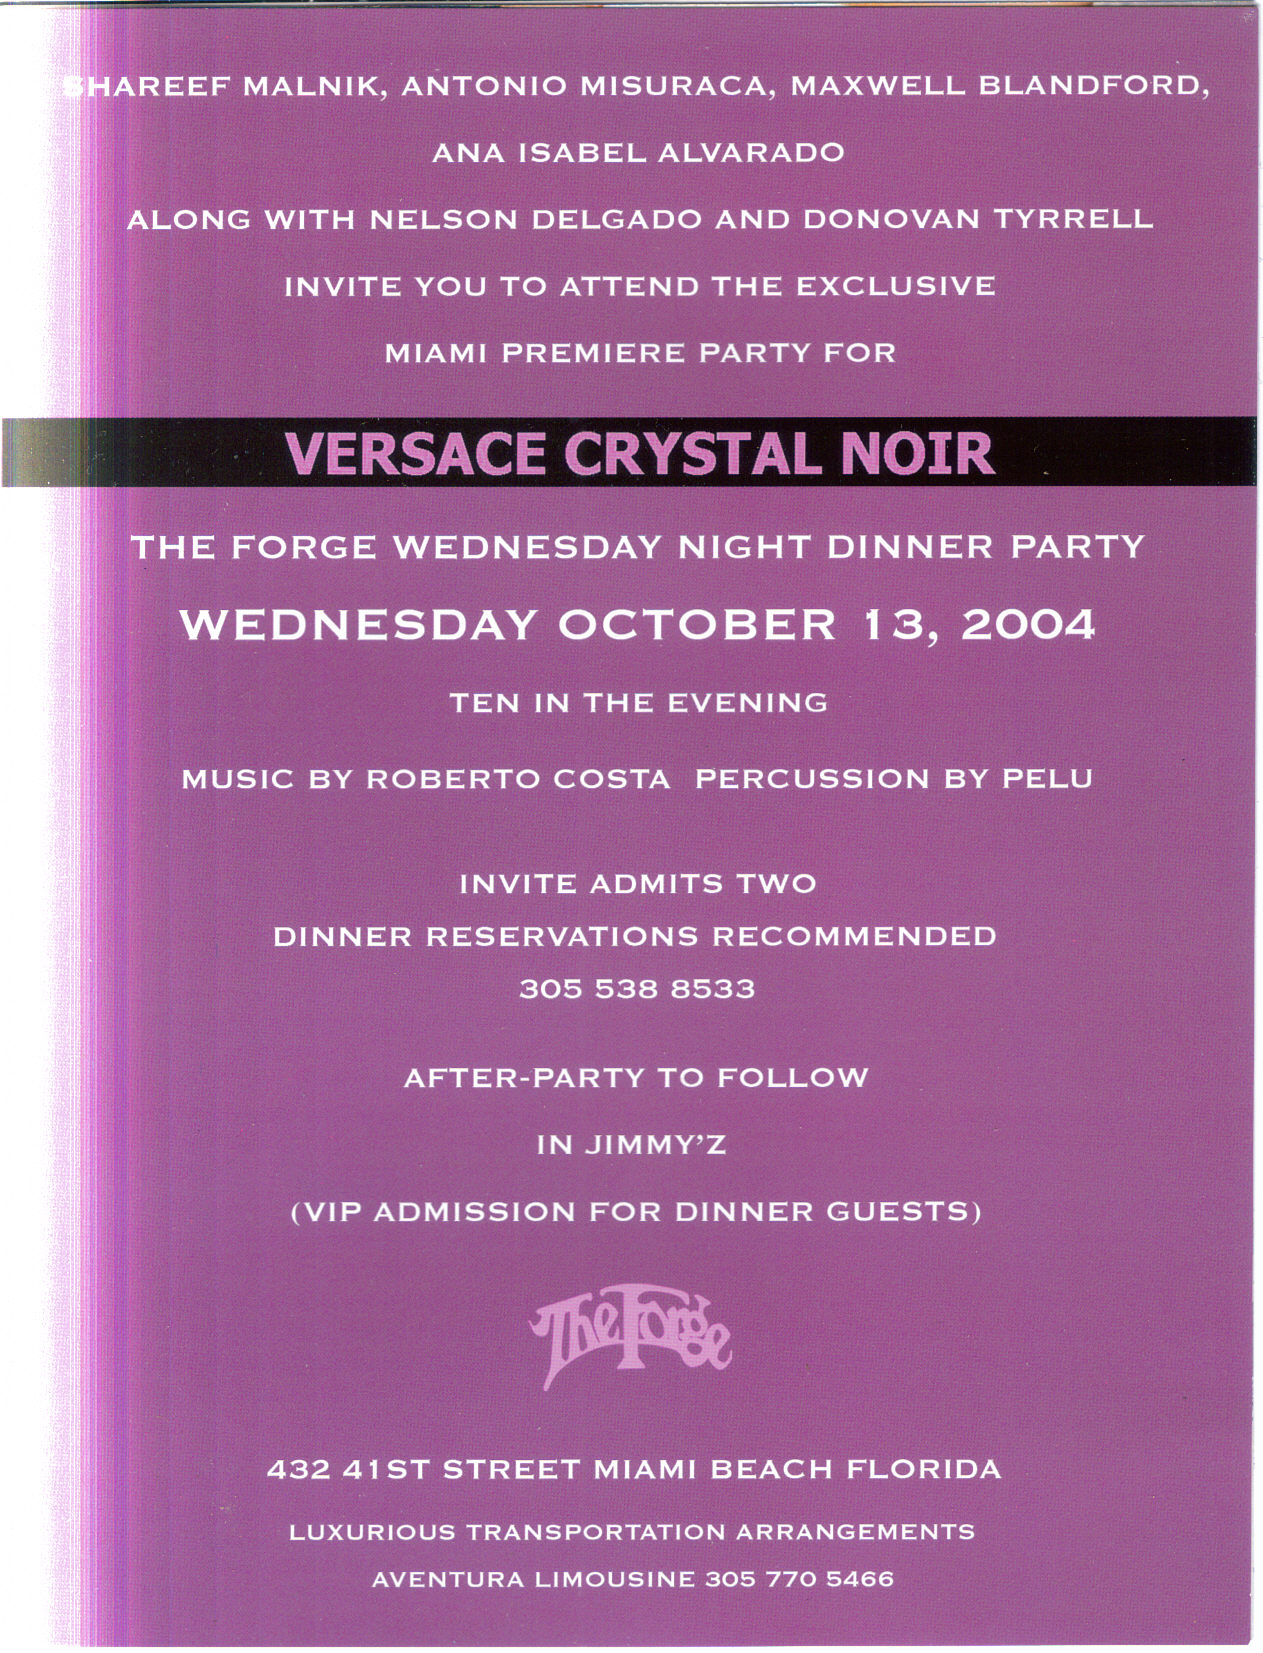 Versace Inside of invite